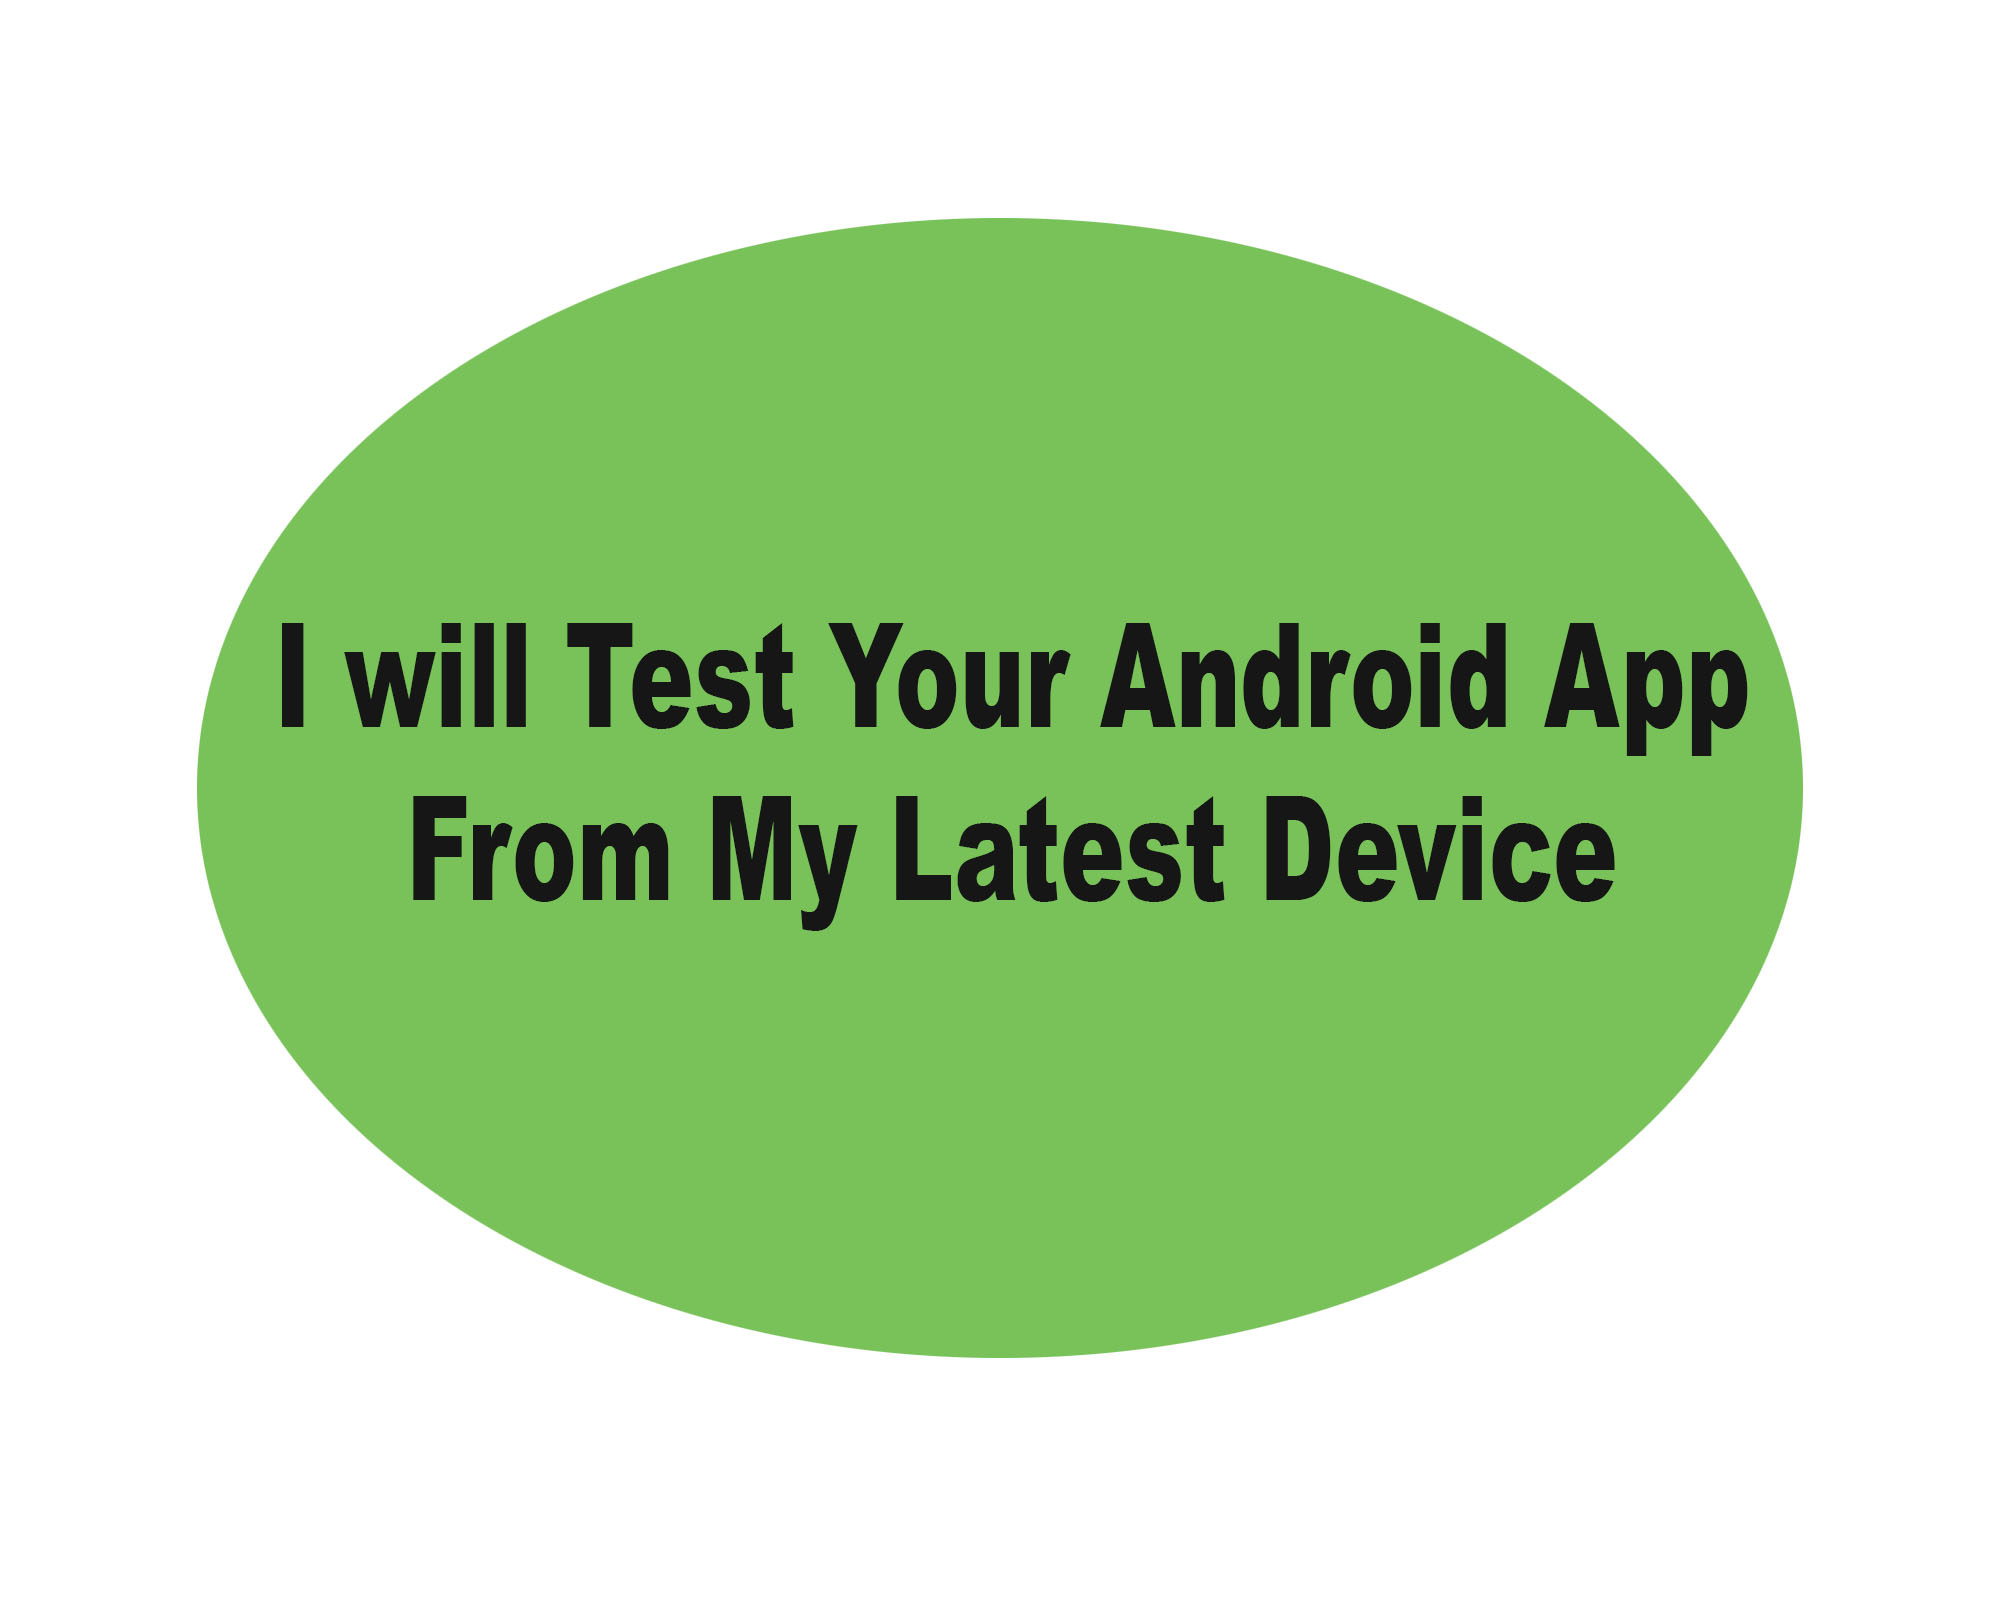 Test Your Android App From My Latest Device